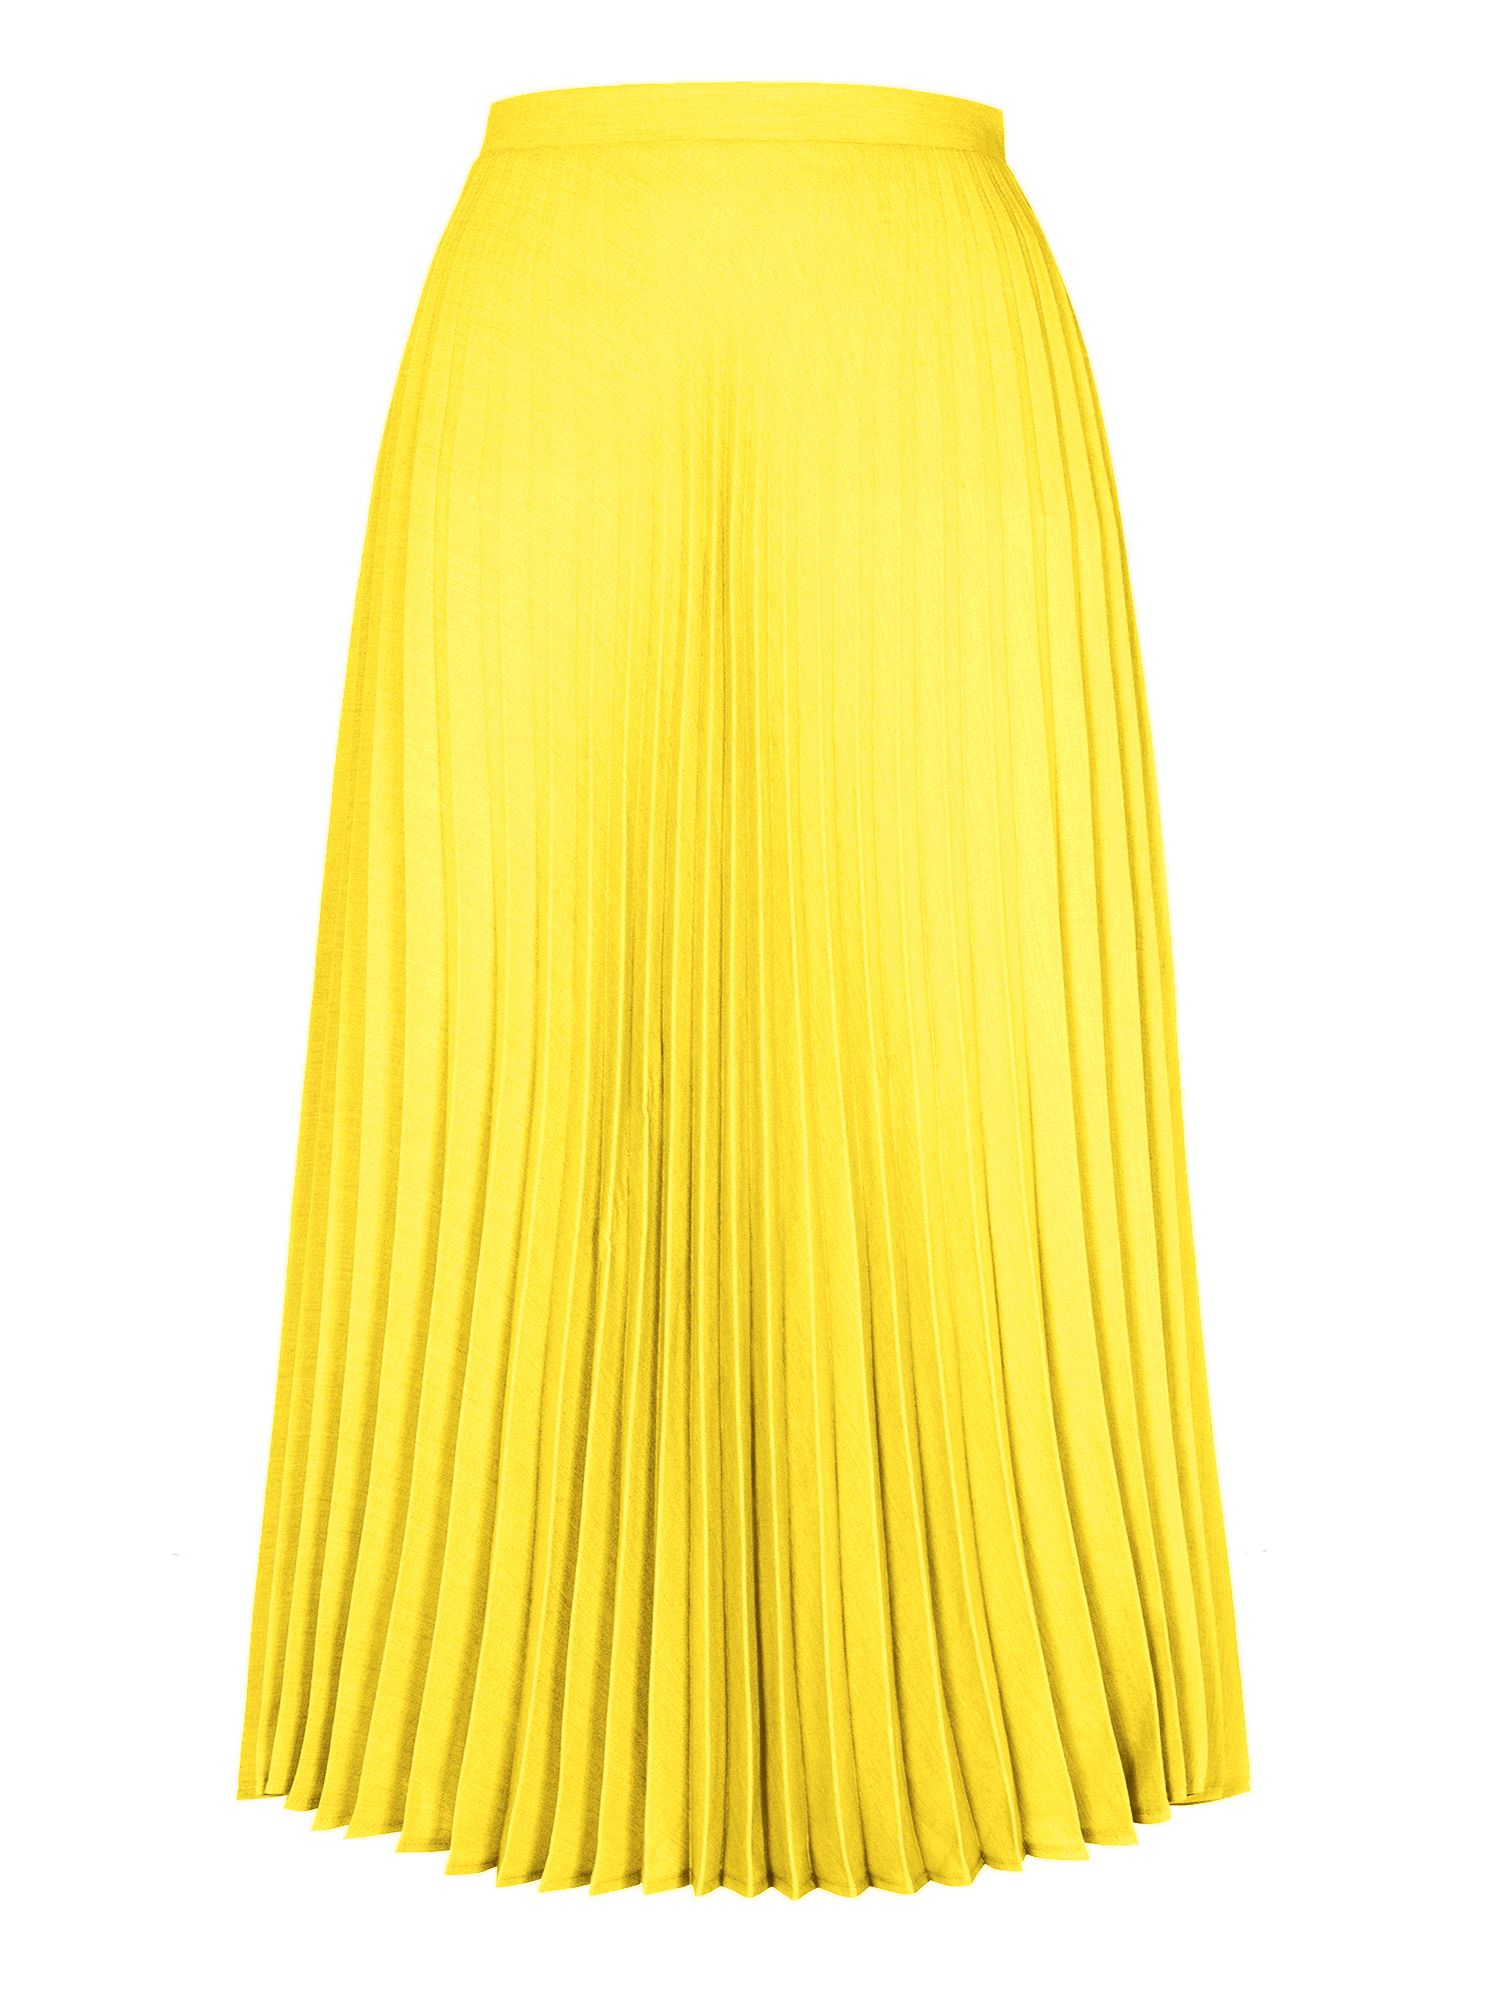 HotSquash Skirt with CleverTech, Yellow